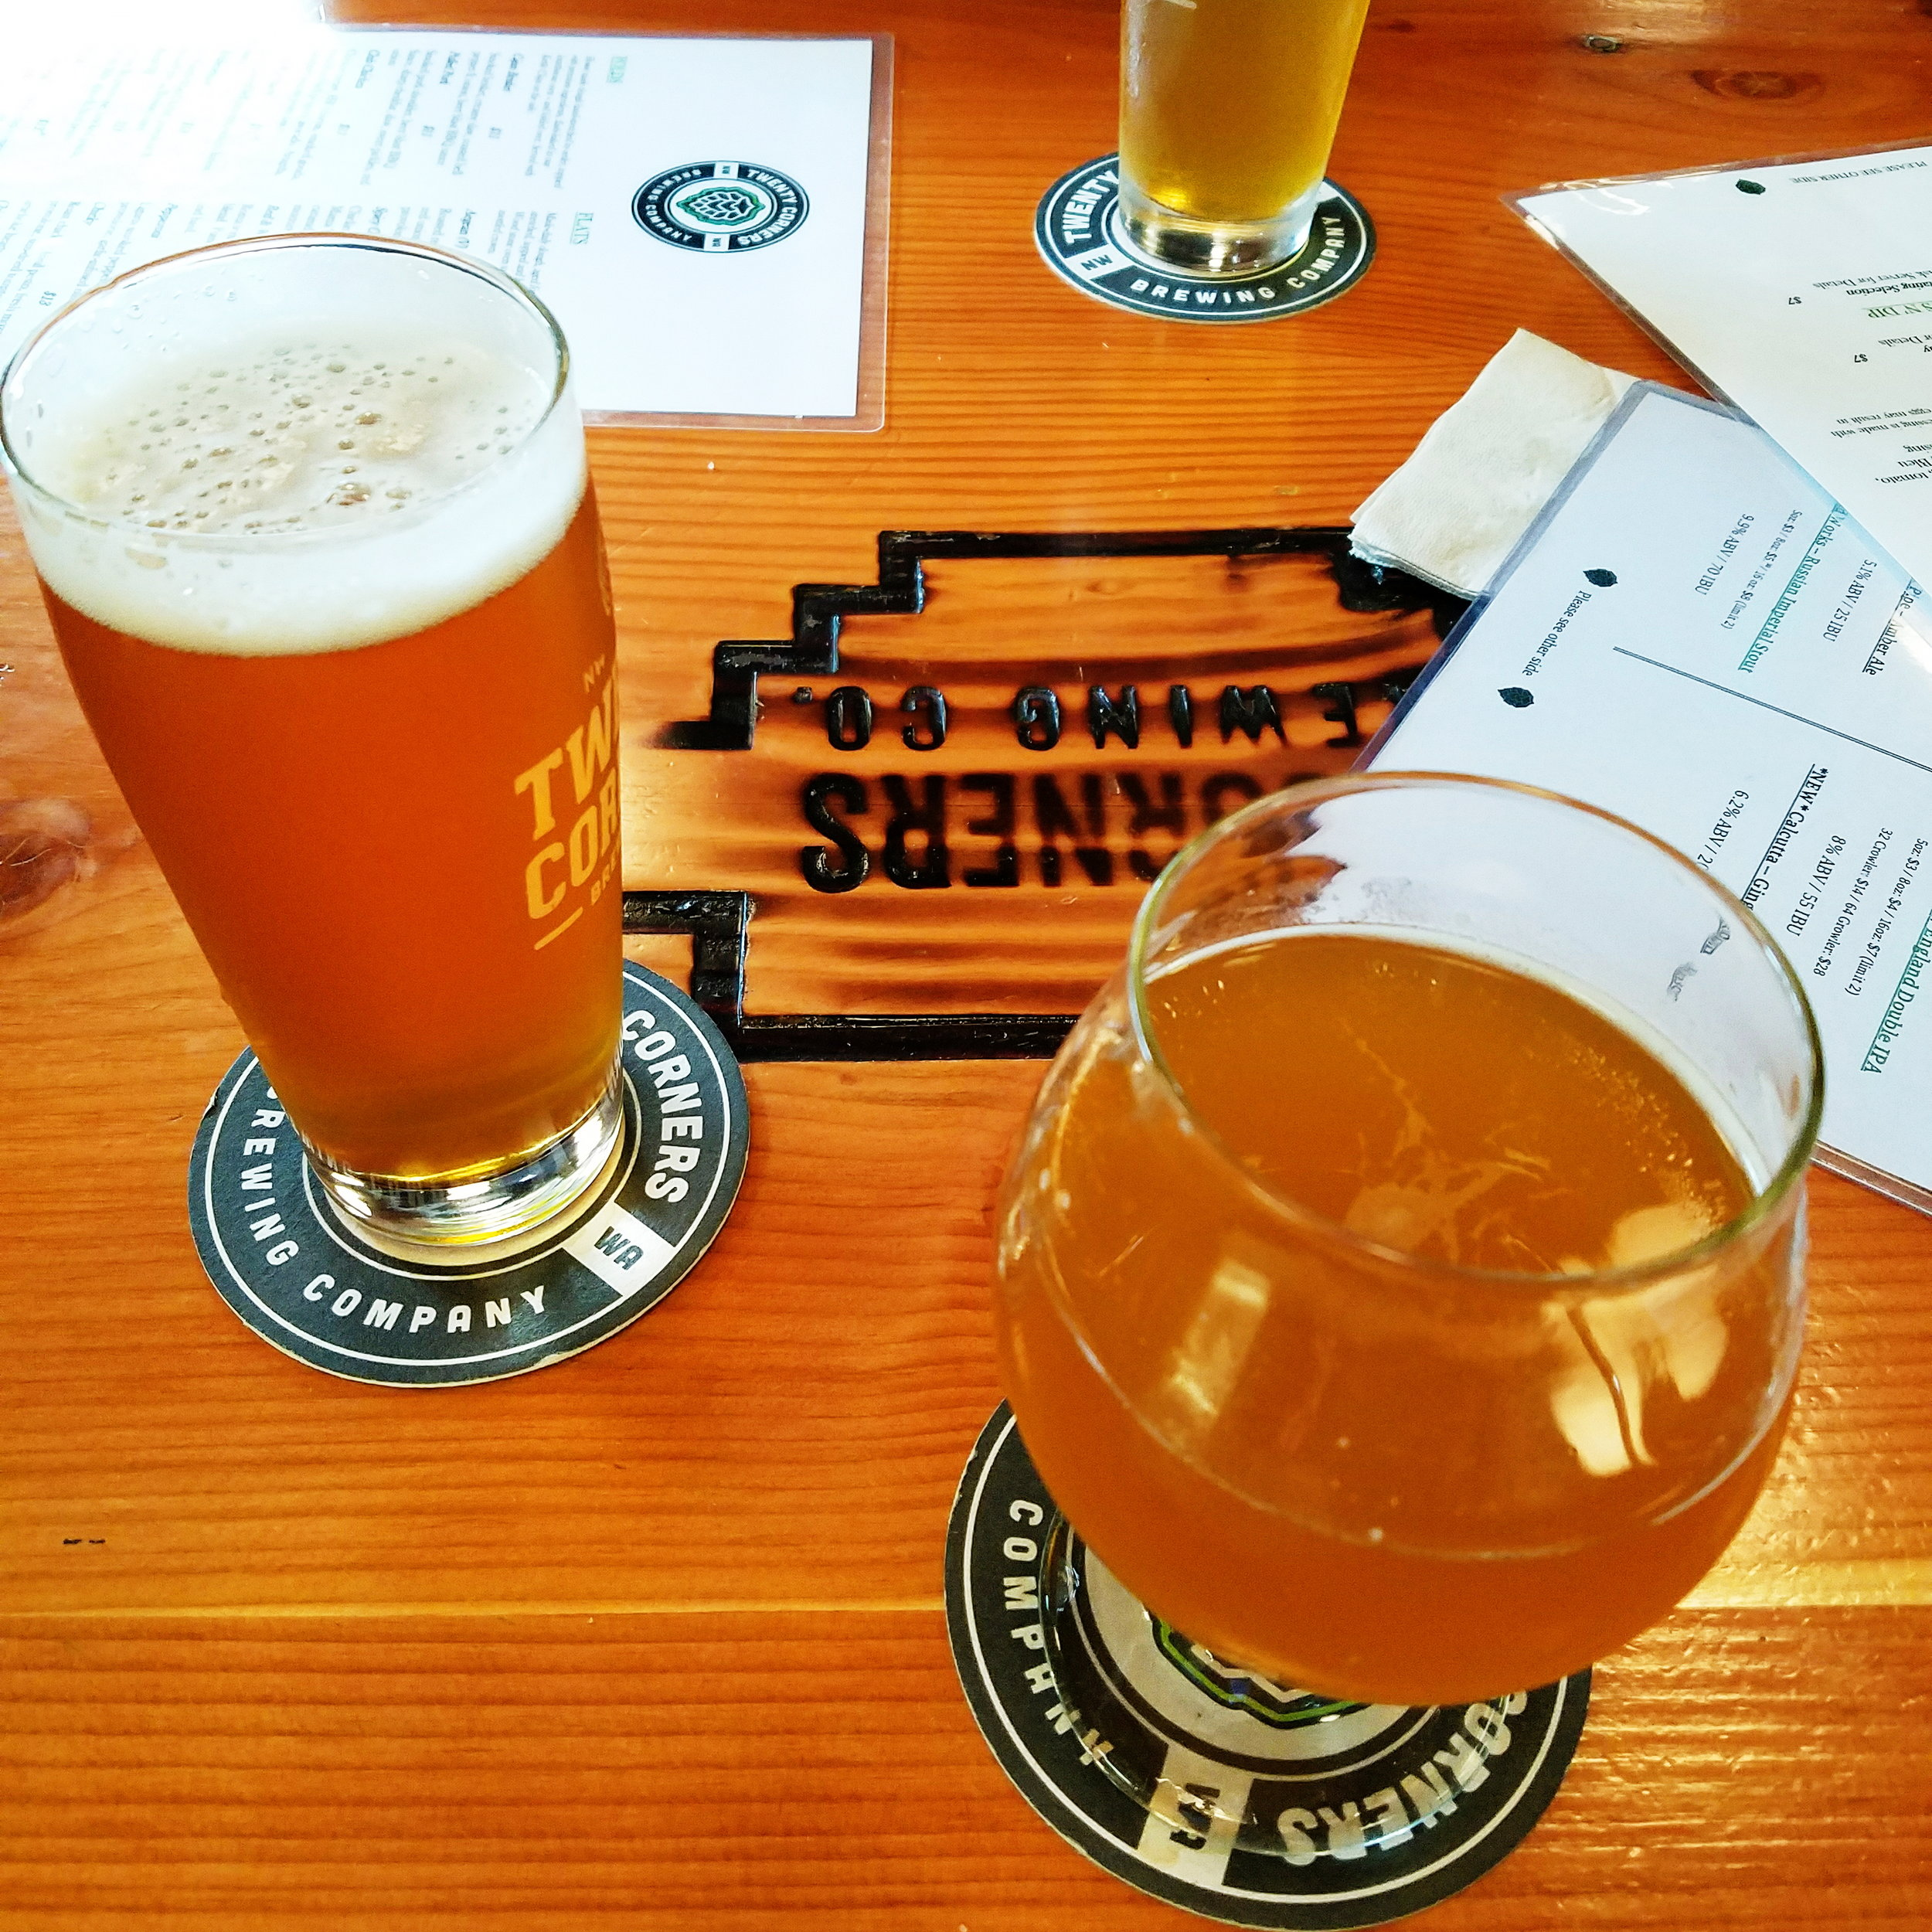 Post-hike beers and one of our favorite new breweries.Who am I kidding... they're all our favorite!